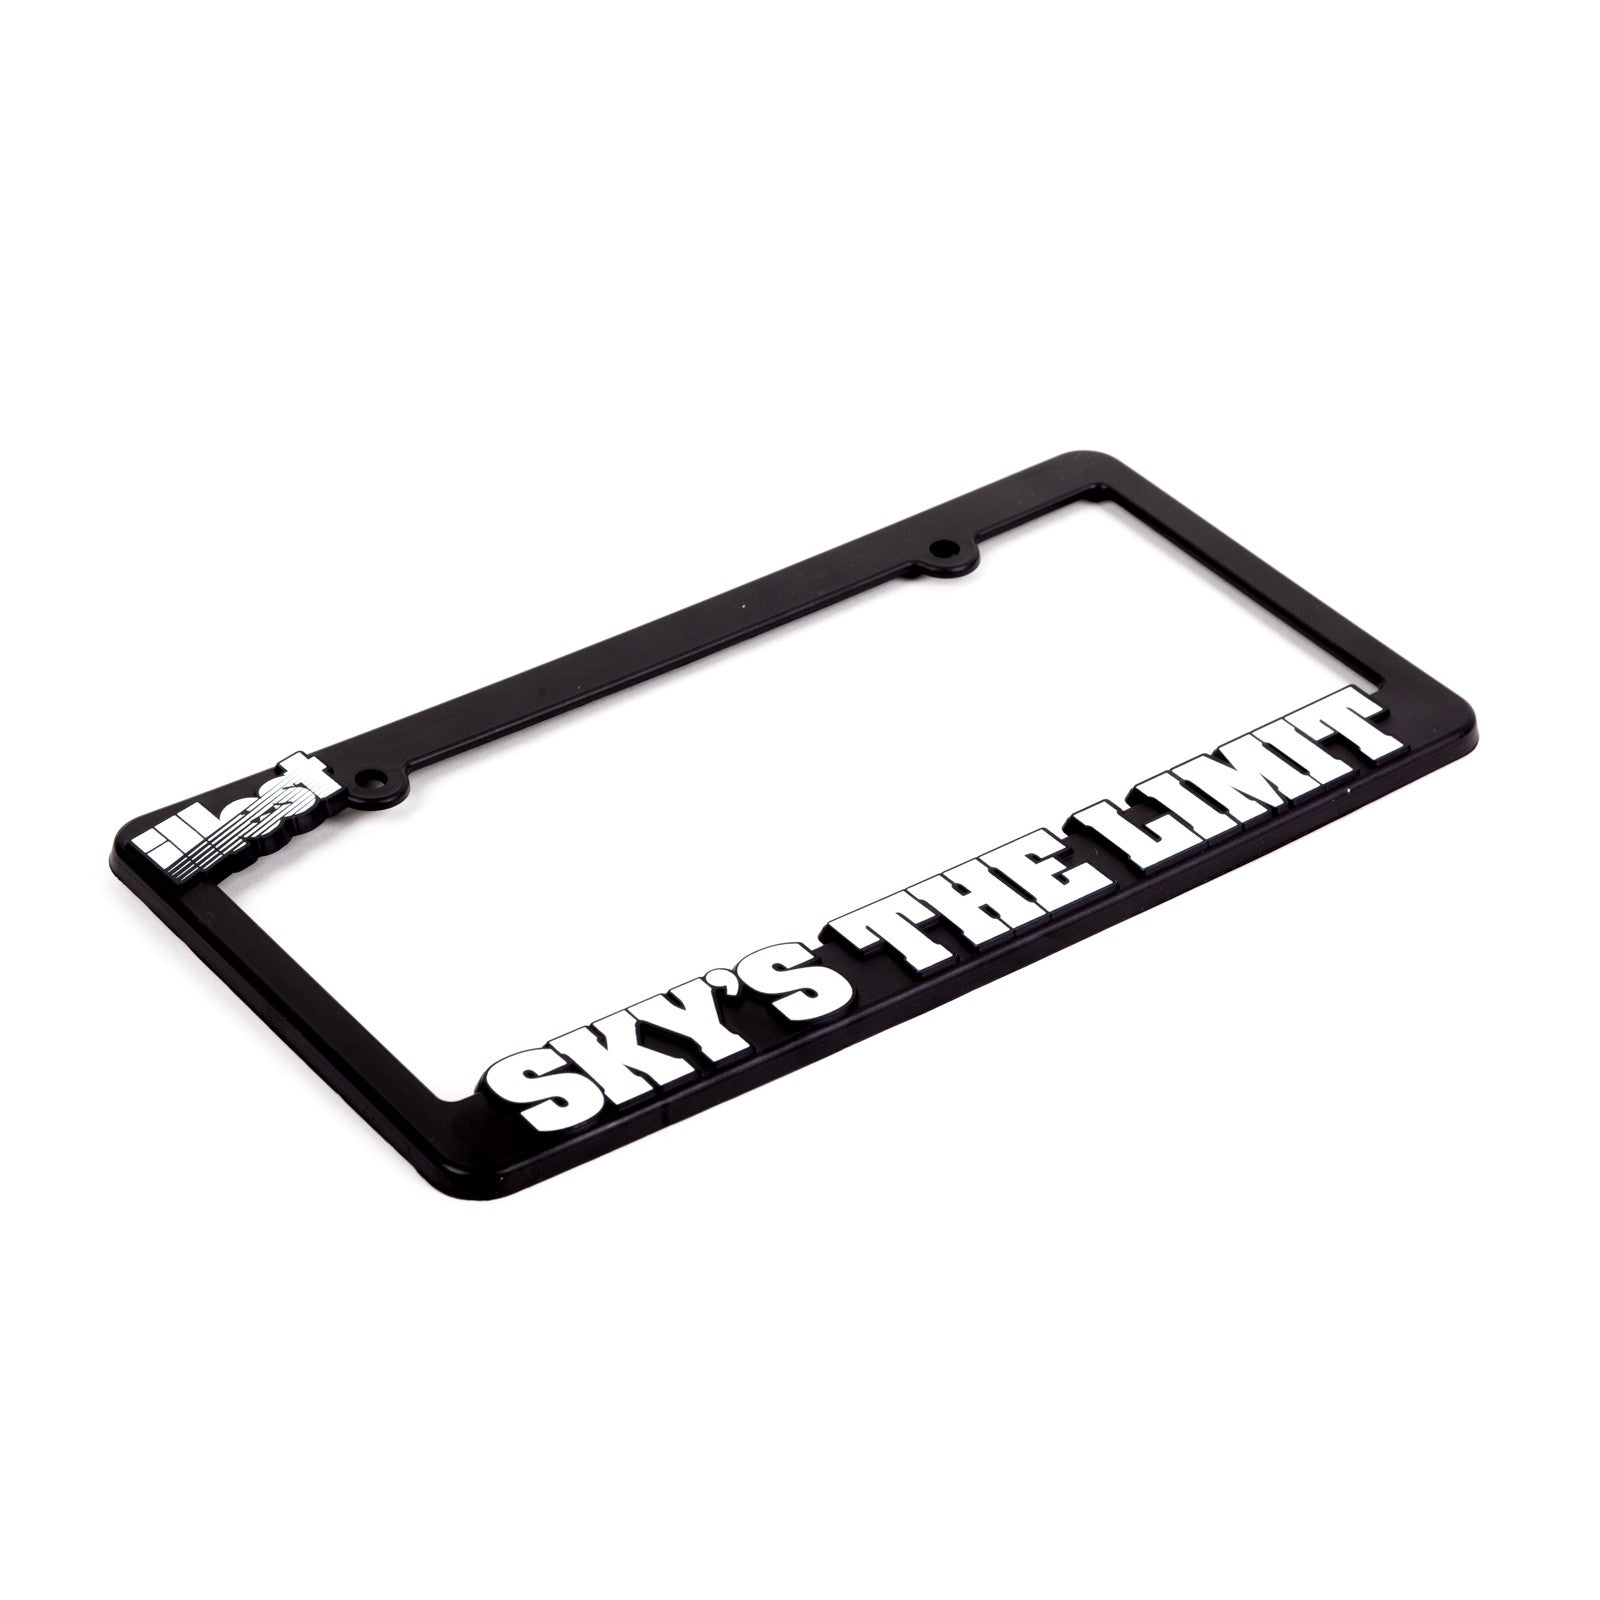 ILLEST SKY\'S THE LIMIT LICENSE PLATE FRAME – illestbrand